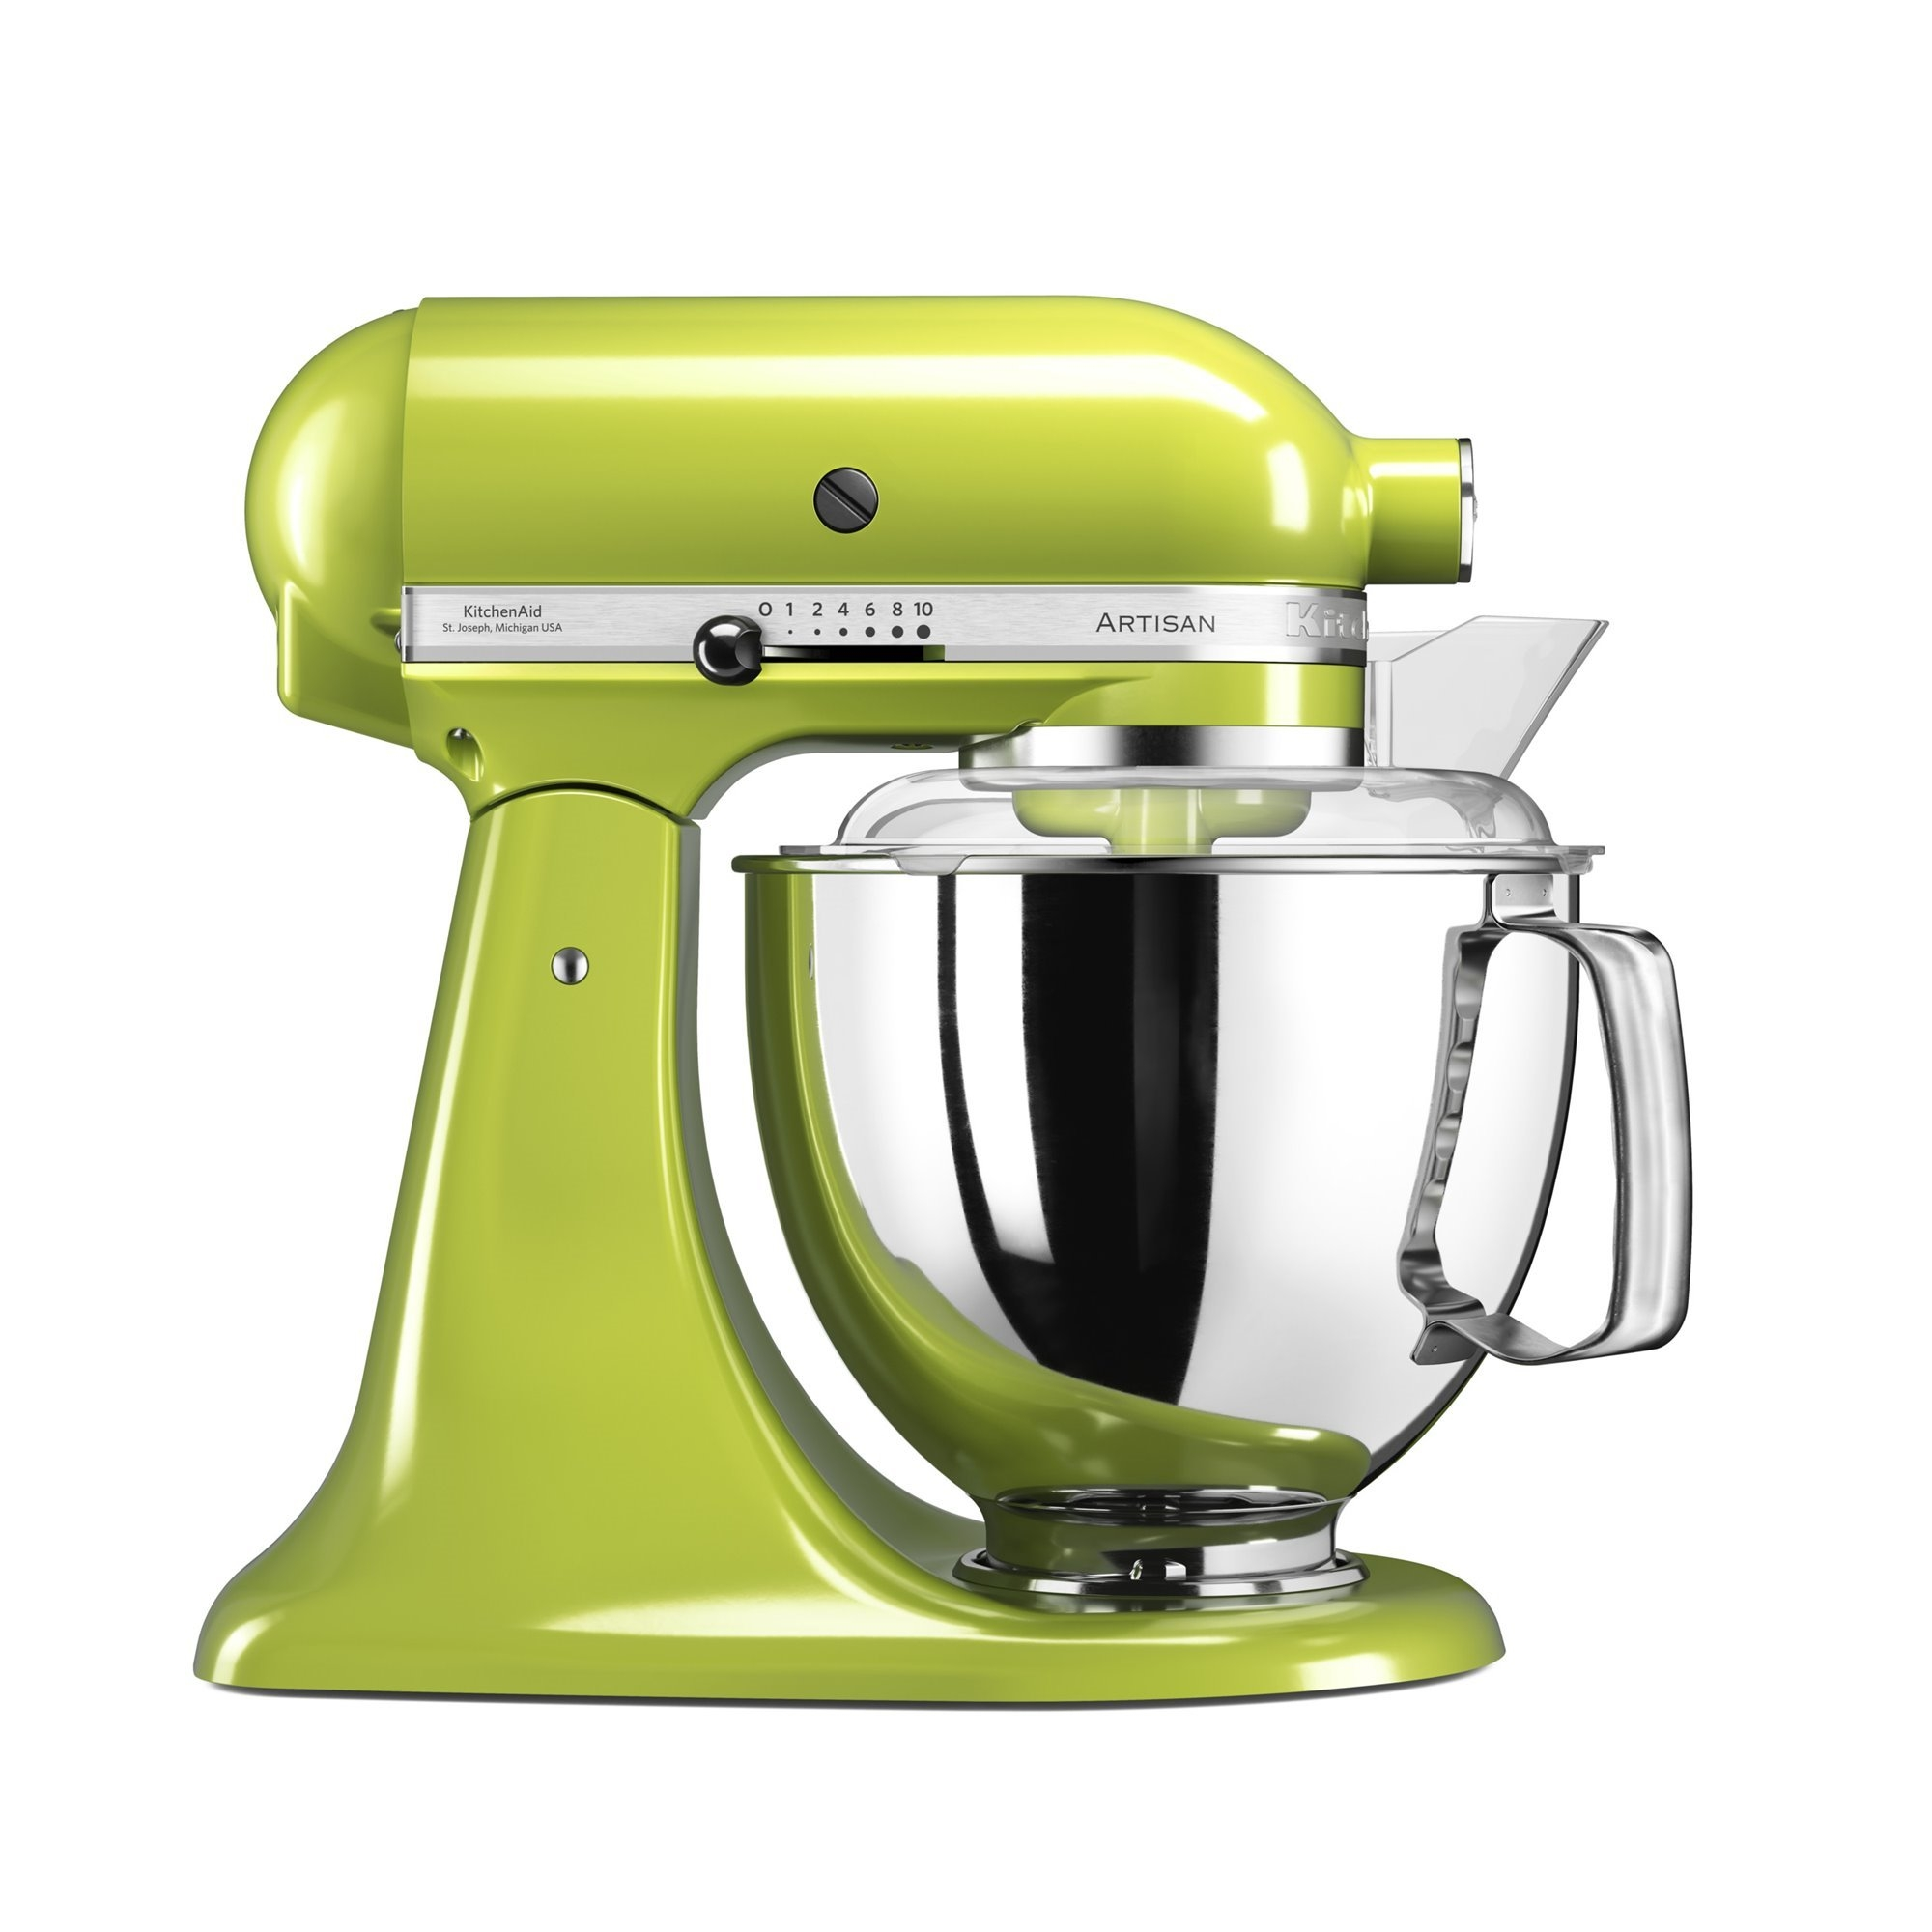 Mixer cu bol Artisan Elegance 5KSM175PSEGA 48 L Green Apple 300W KitchenAid